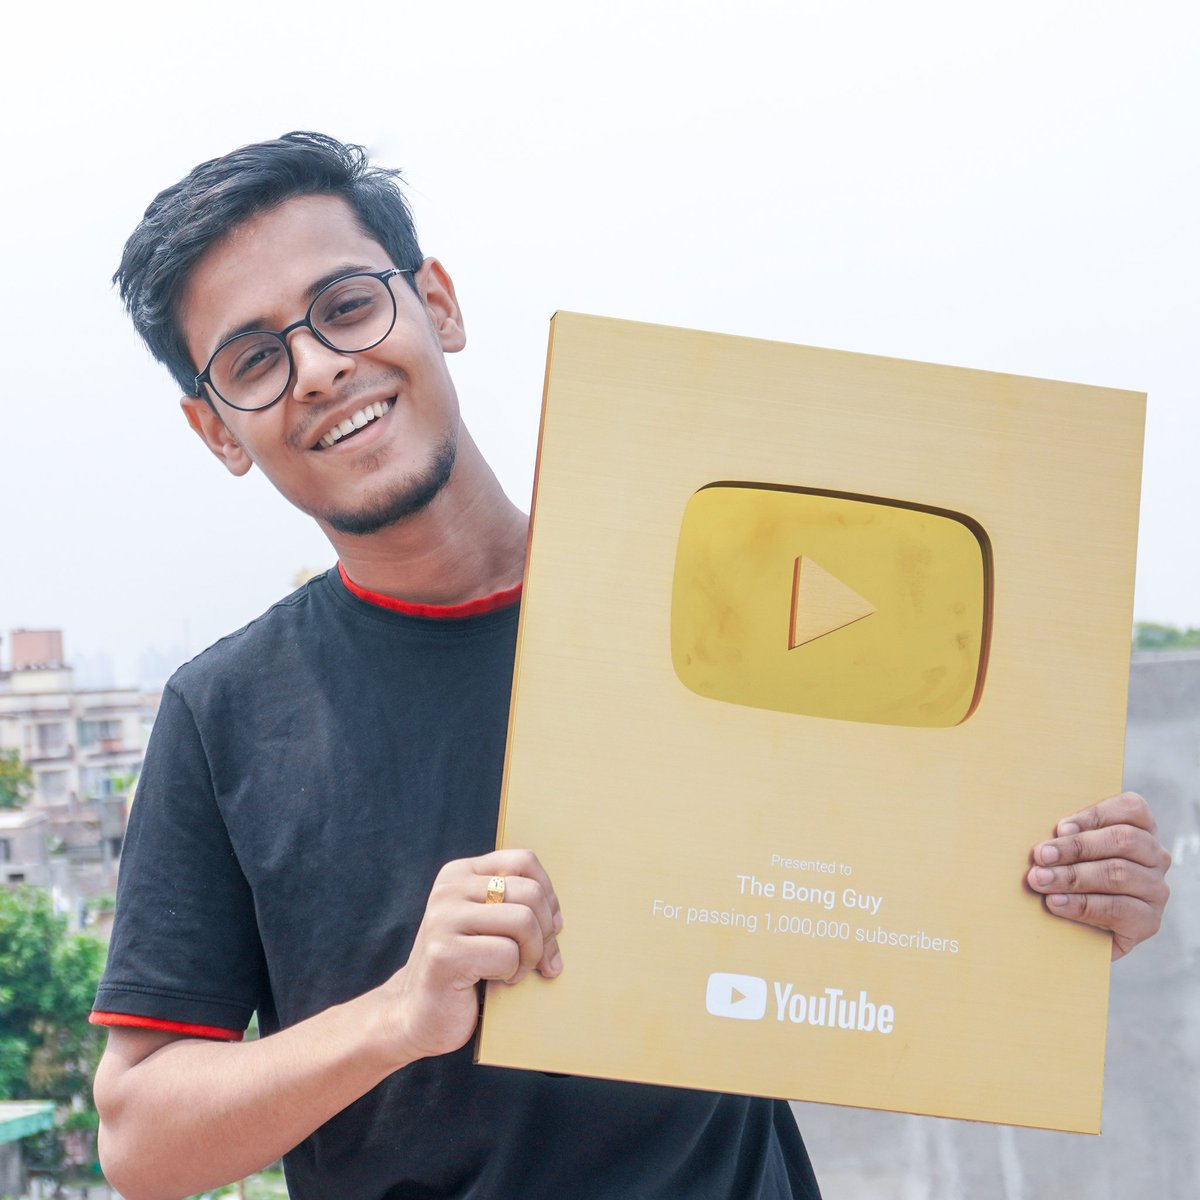 Thank You everyone.The Gold Play Button is here ❤️🙏 @YTCreatorsIndia @YouTubeIndia